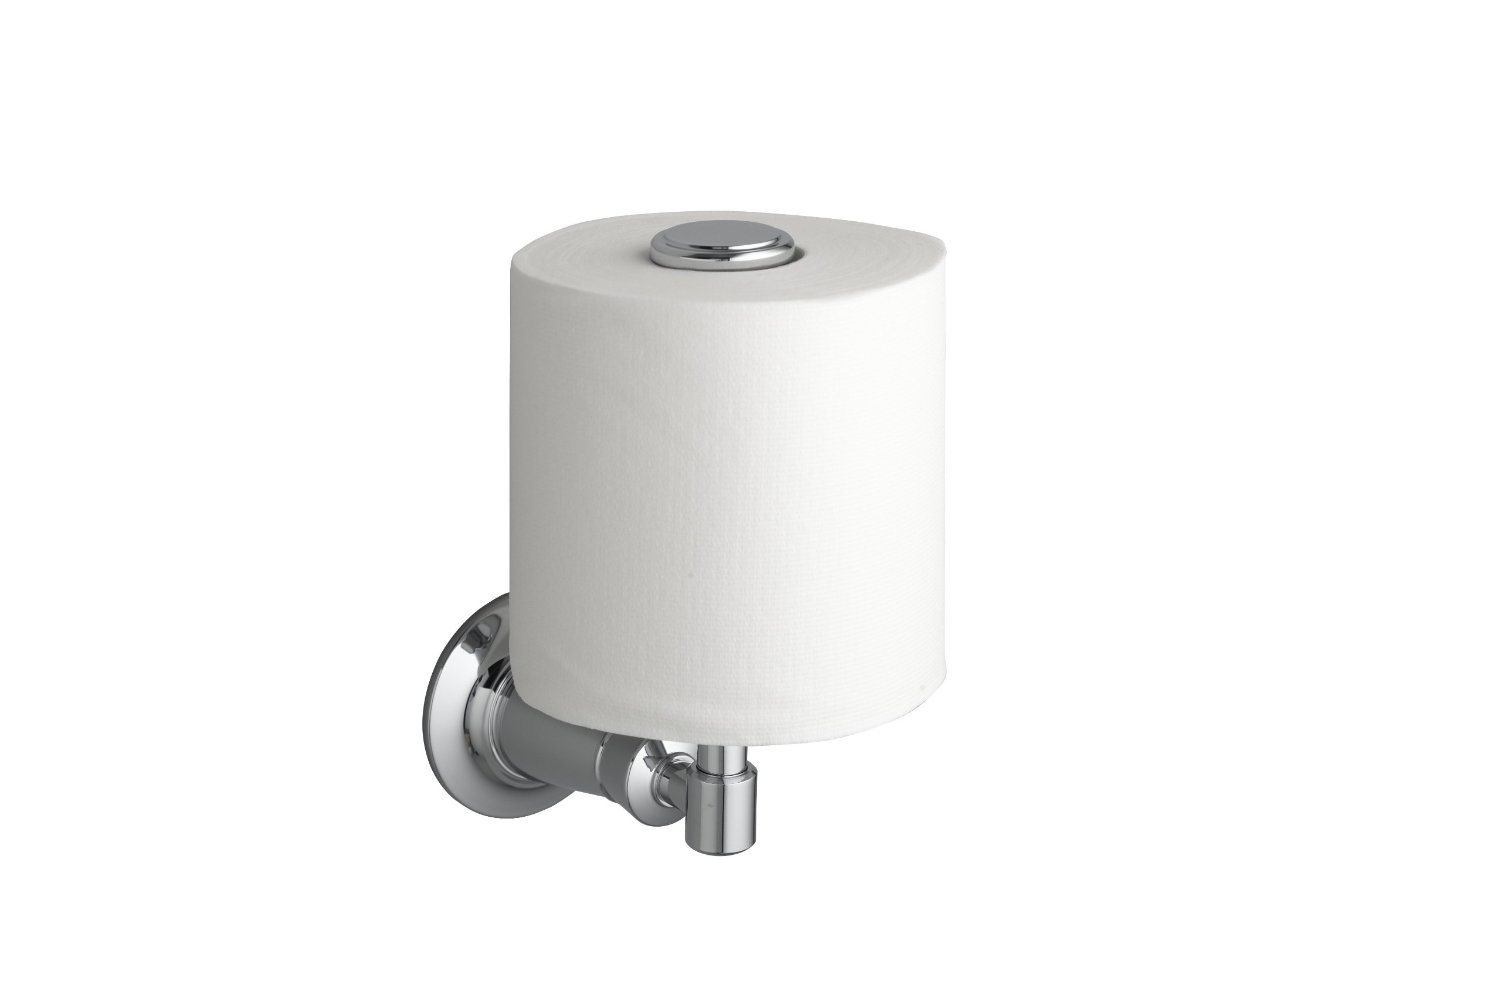 Vertical Toilet Paper Holder Homesfeed